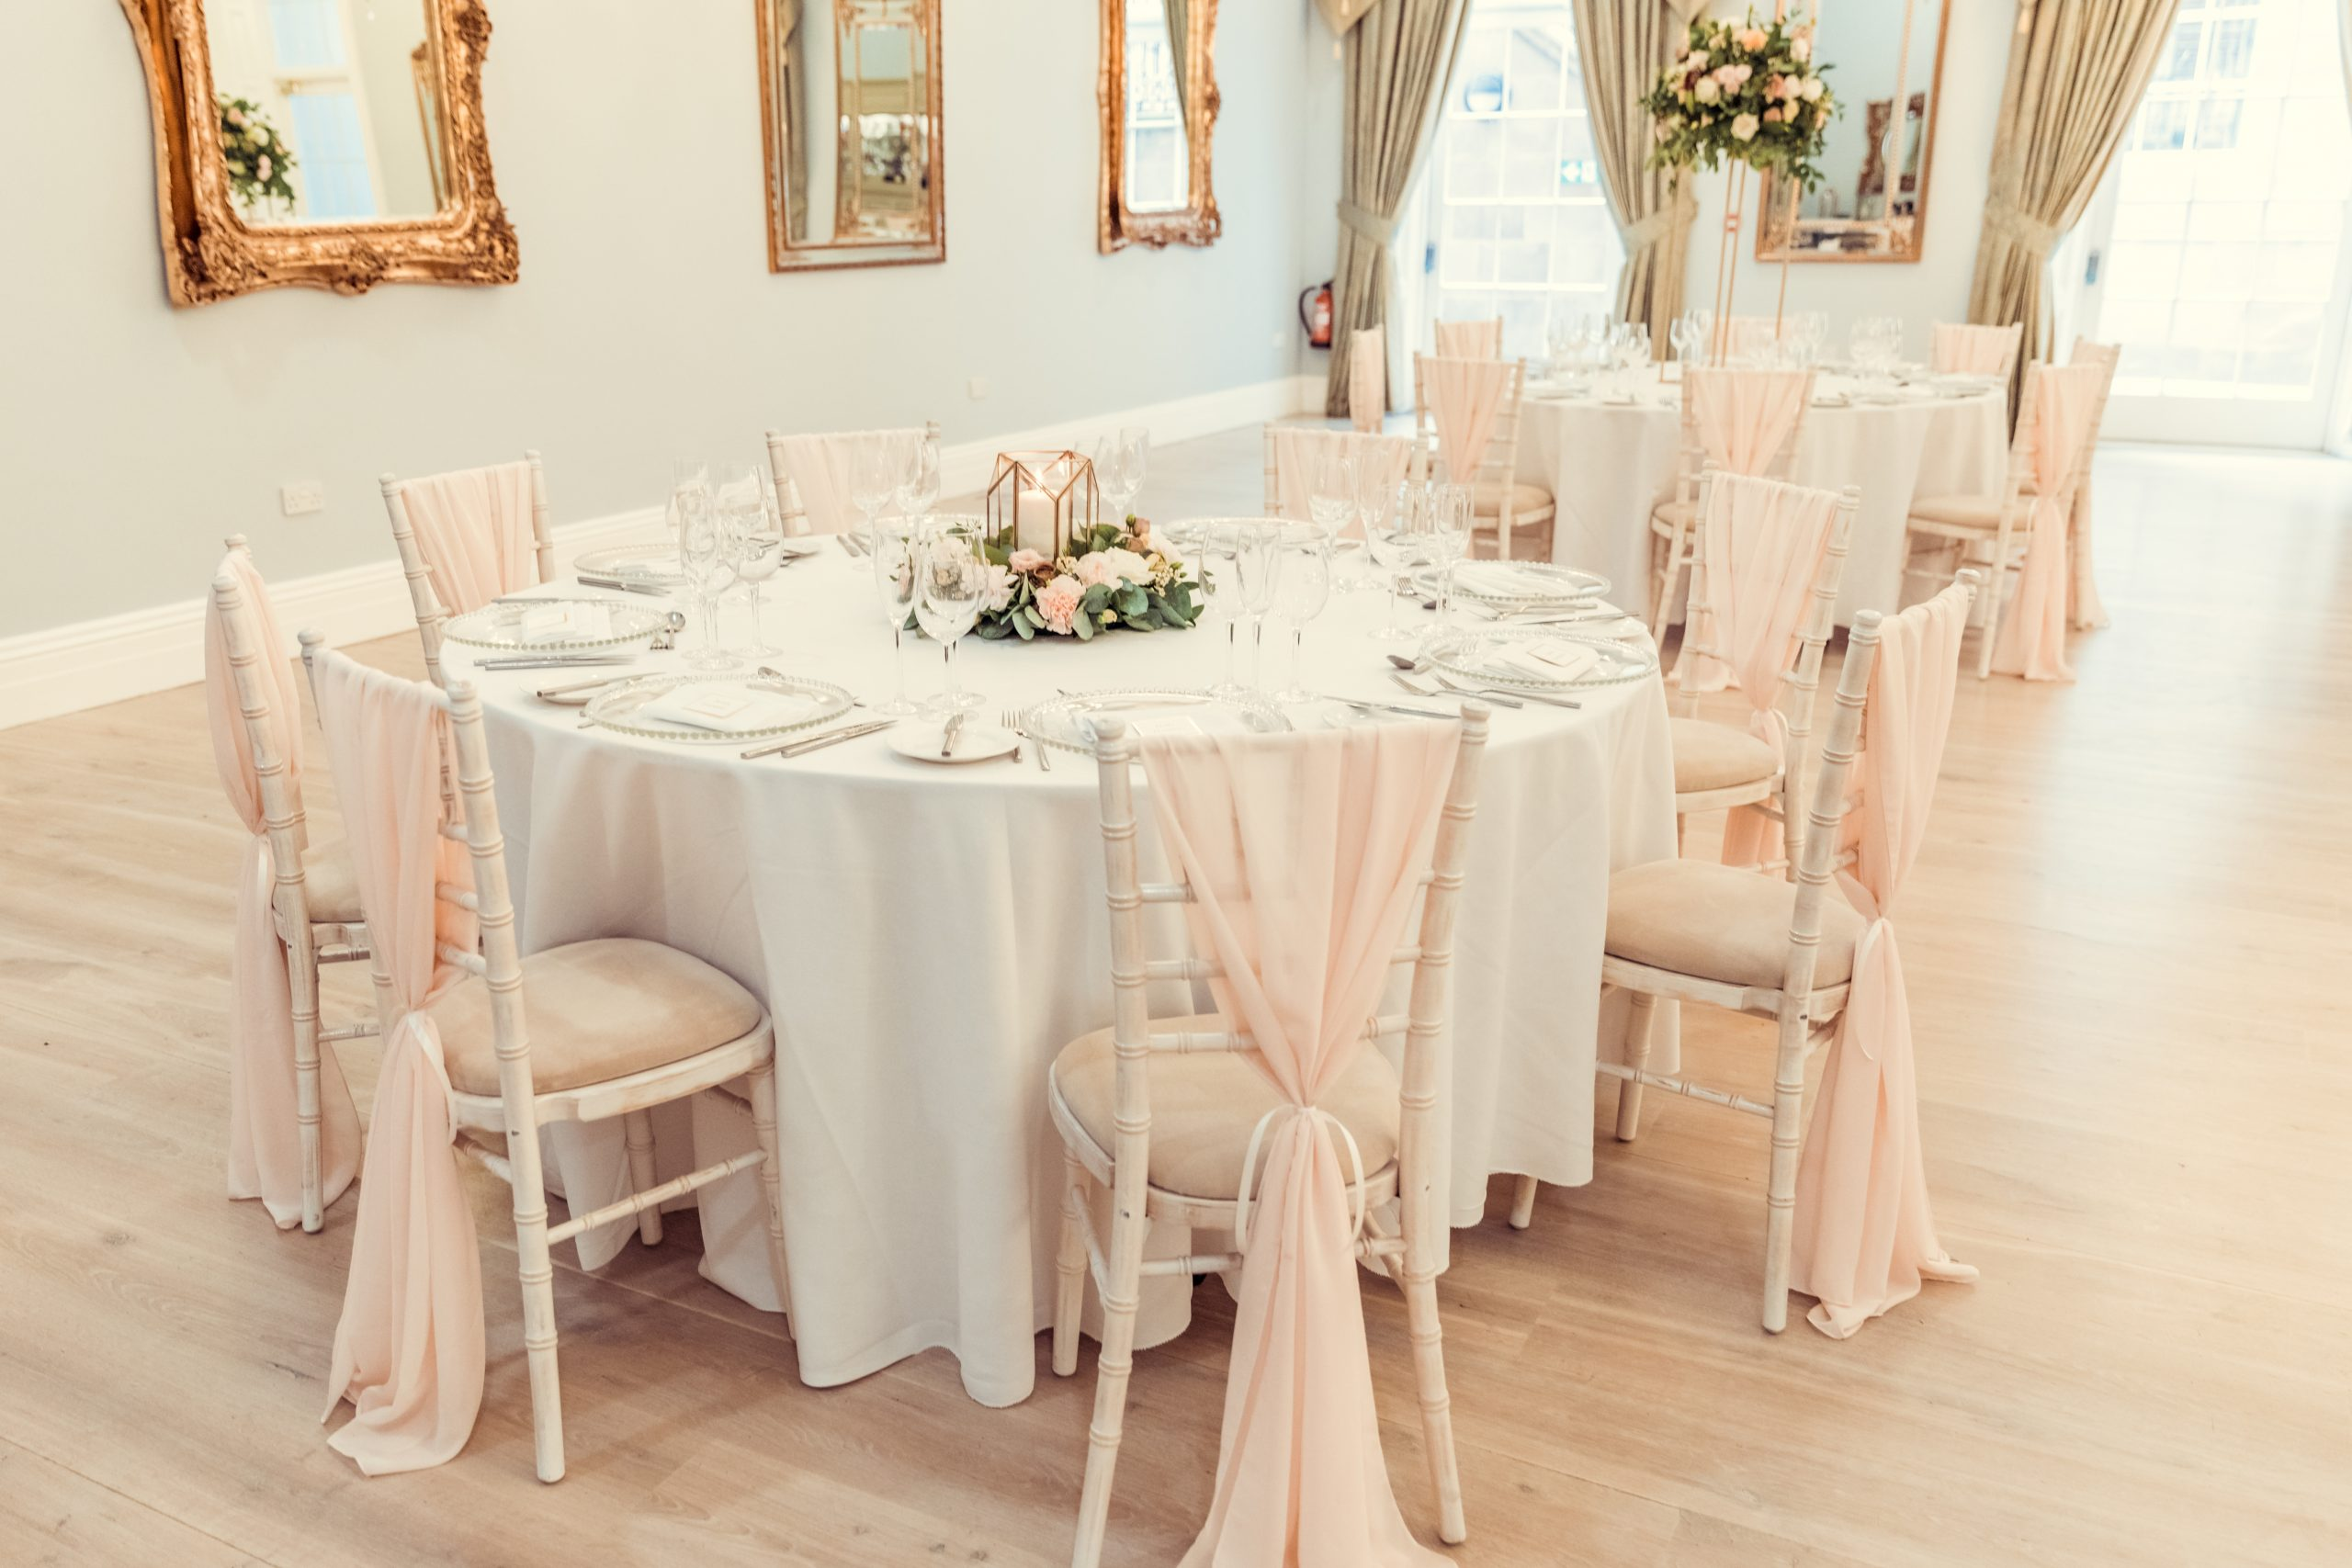 A table decorated for a wedding at Doxford Hall with blush pink chair sashes and a gold lantern centrepiece with flowers